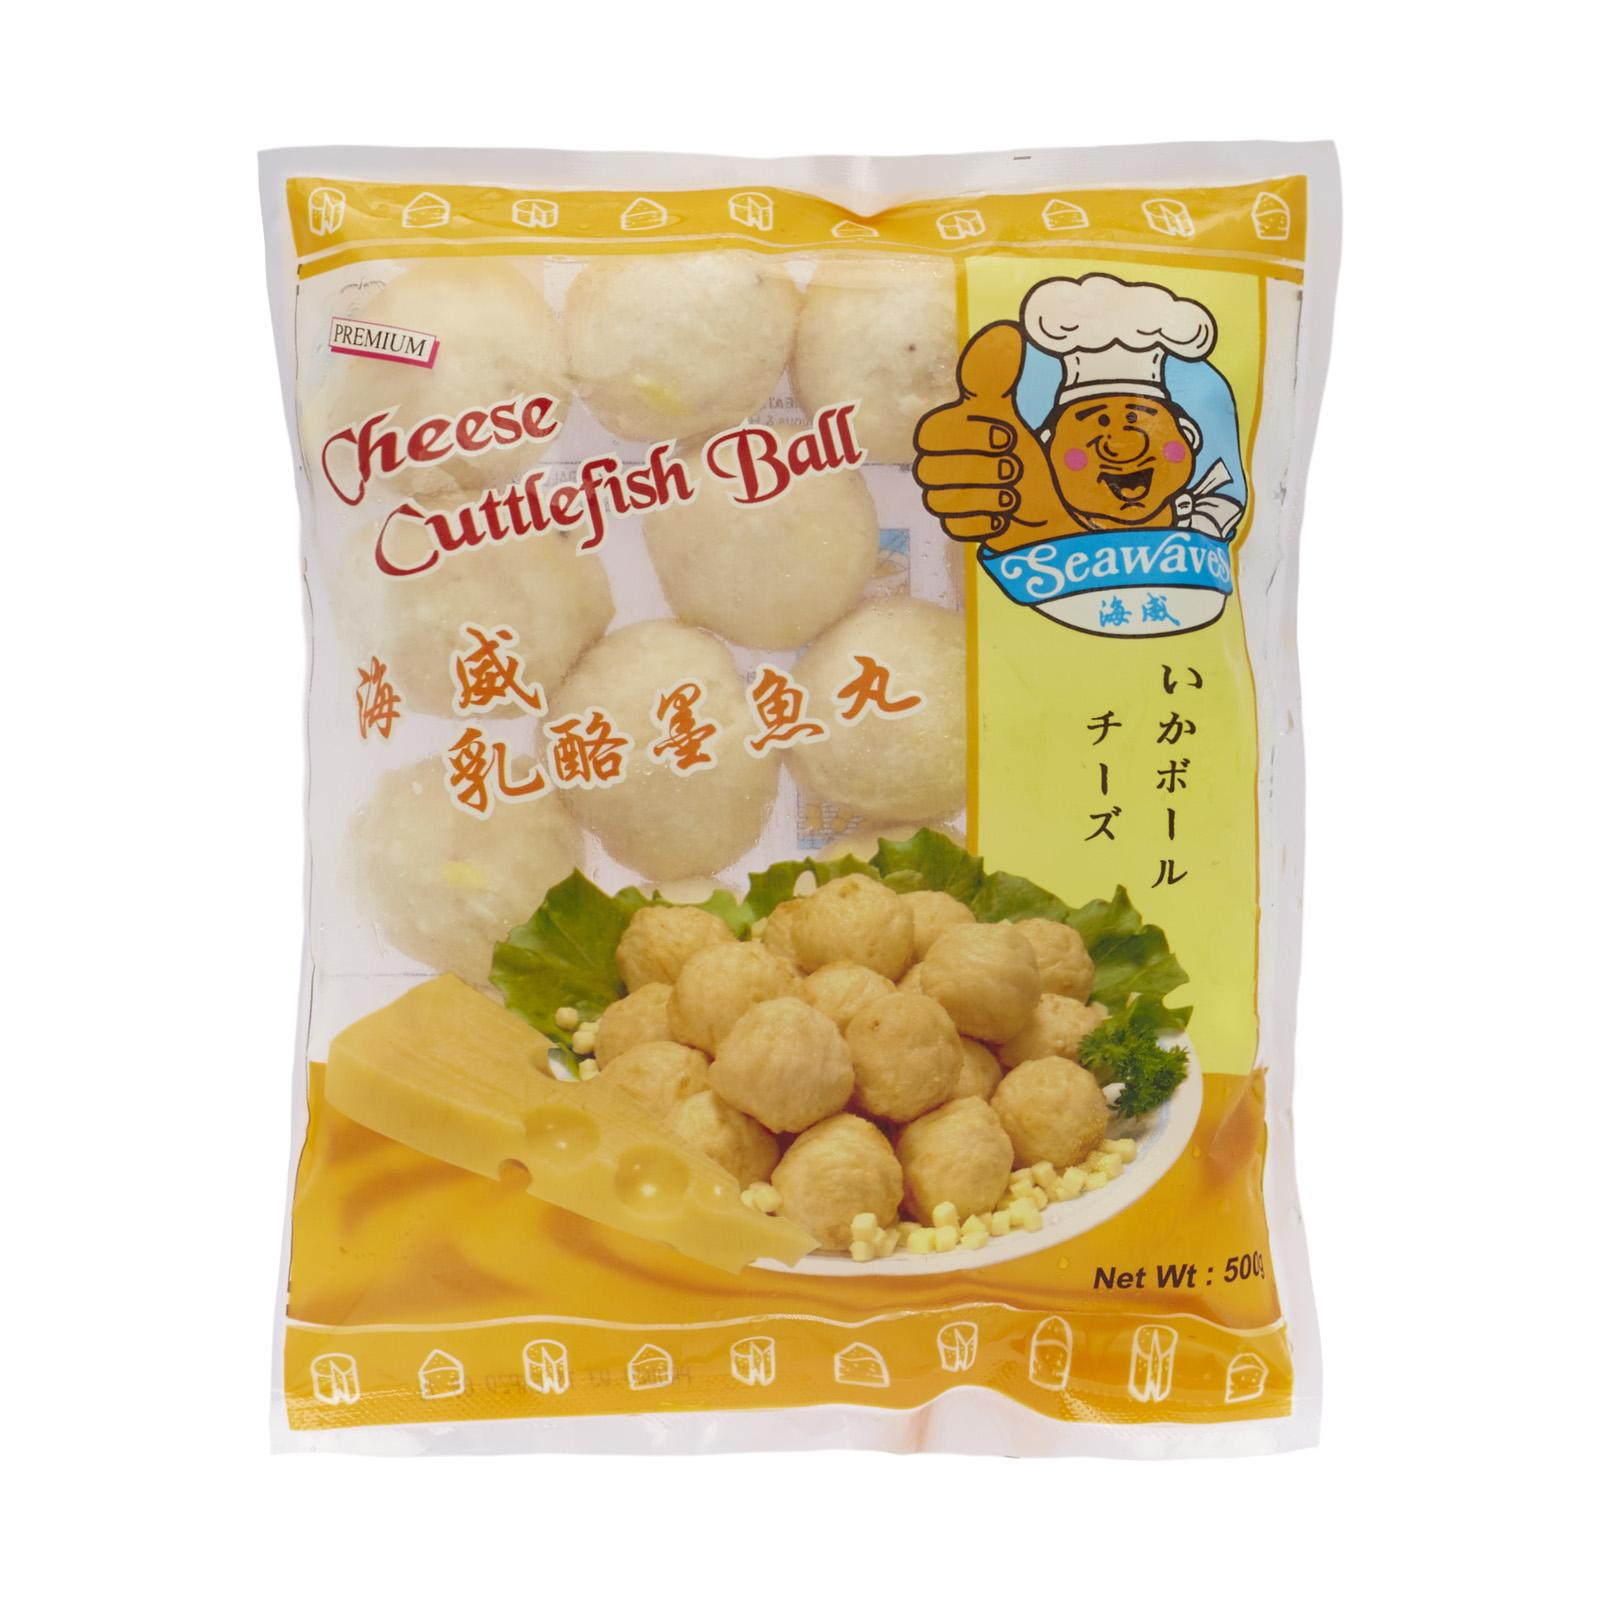 Seawaves Cheese Cuttlefish Ball - Frozen By Redmart.